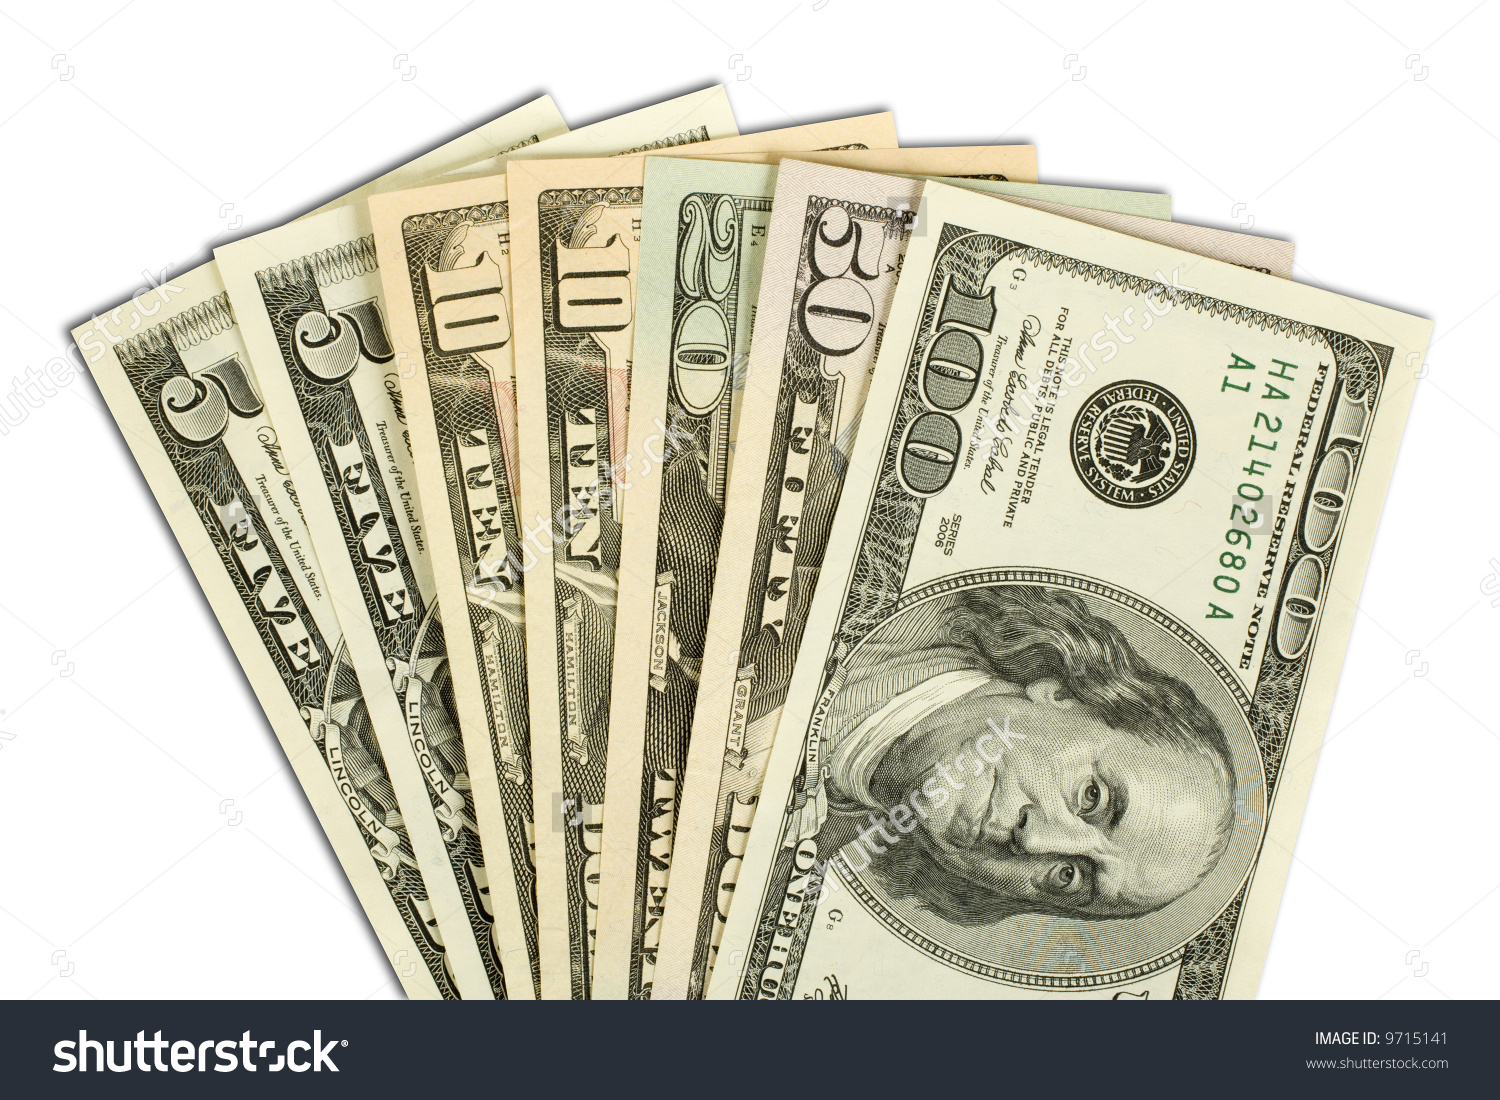 American Money Fanned Out 100 50 Stock Photo 9715141.